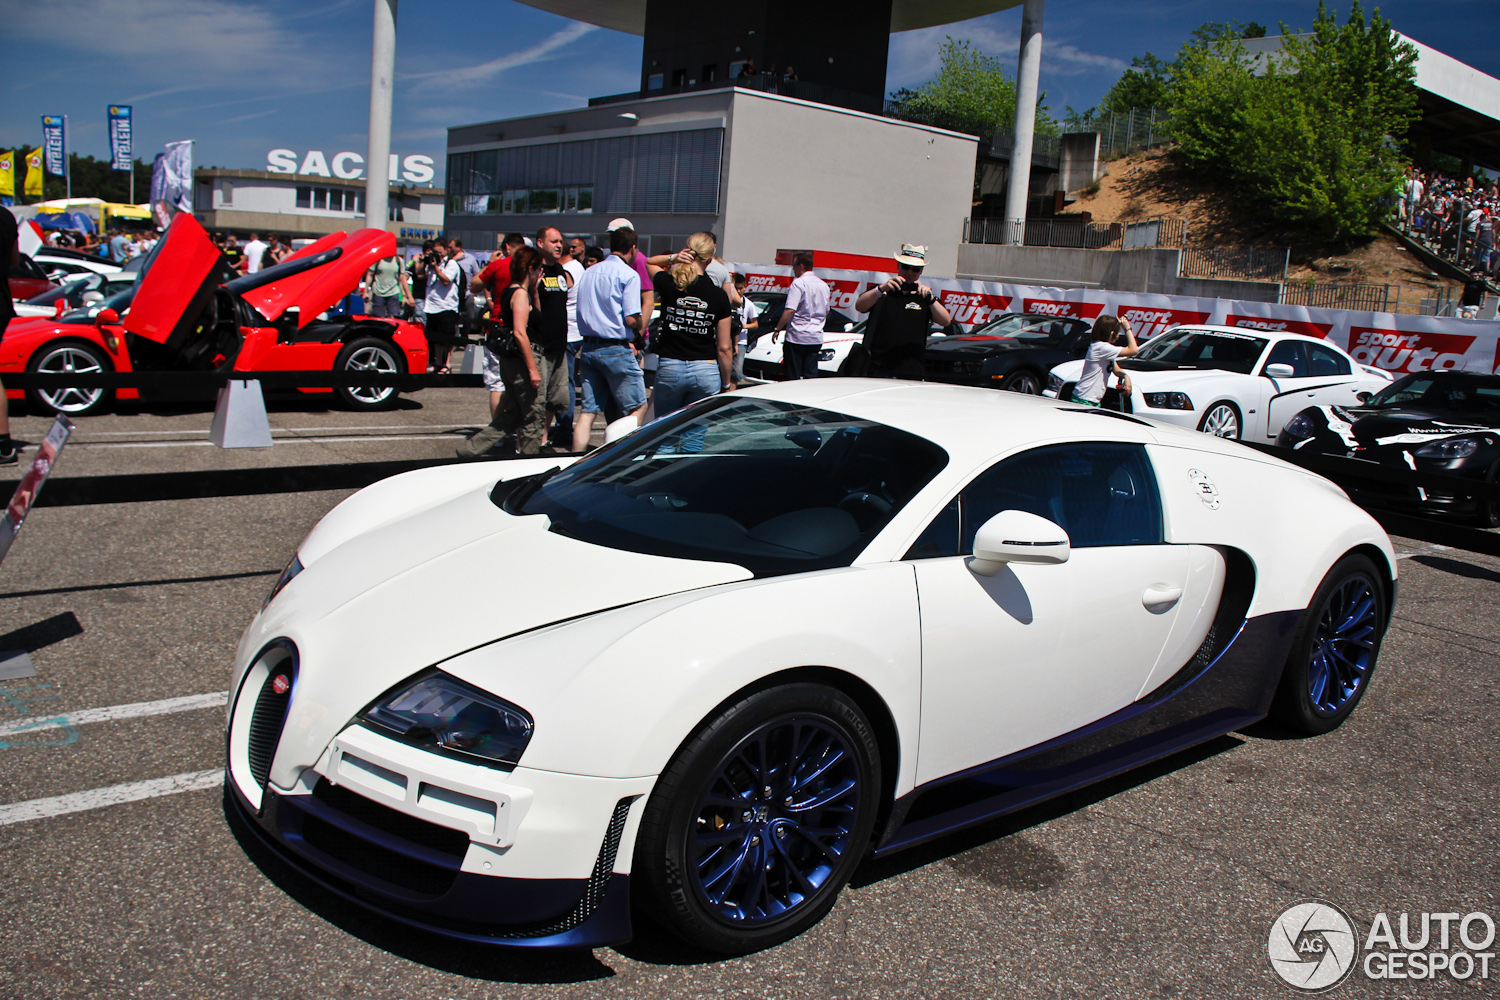 bugatti veyron super sport performance with Sport Auto High Performance Days 2012 Veyron 164 Super Sport In Nieuwe Kleuren on 23888 moreover Tata Indica Vista Electric Hd Pictures in addition Sport Auto High Performance Days 2012 Veyron 164 Super Sport In Nieuwe Kleuren furthermore Gold Lamborghini Aventador 1 in addition 10 Most Wanted Fastest Cars In The World 2016.